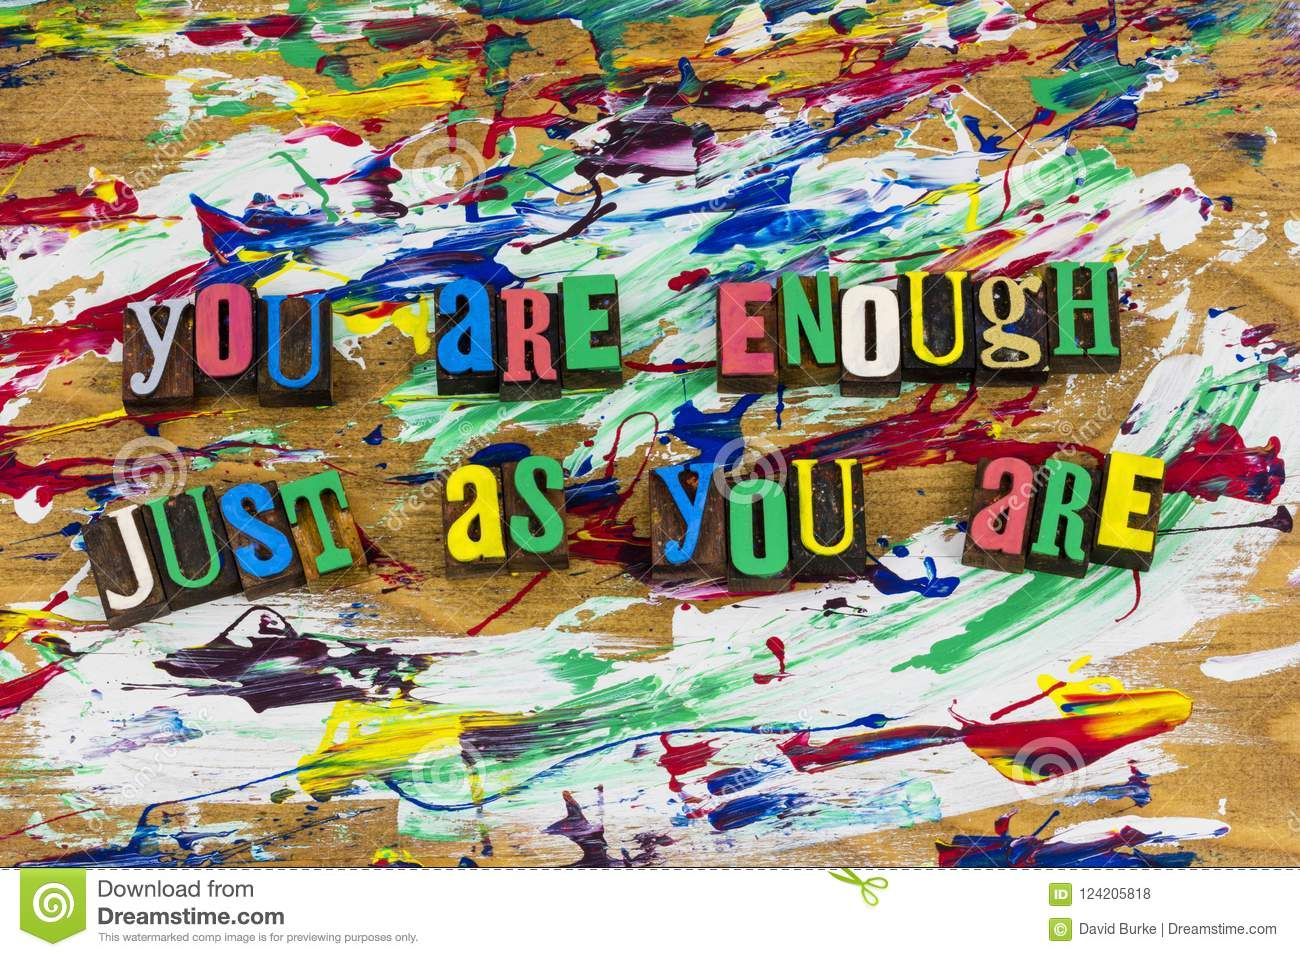 You are enough love